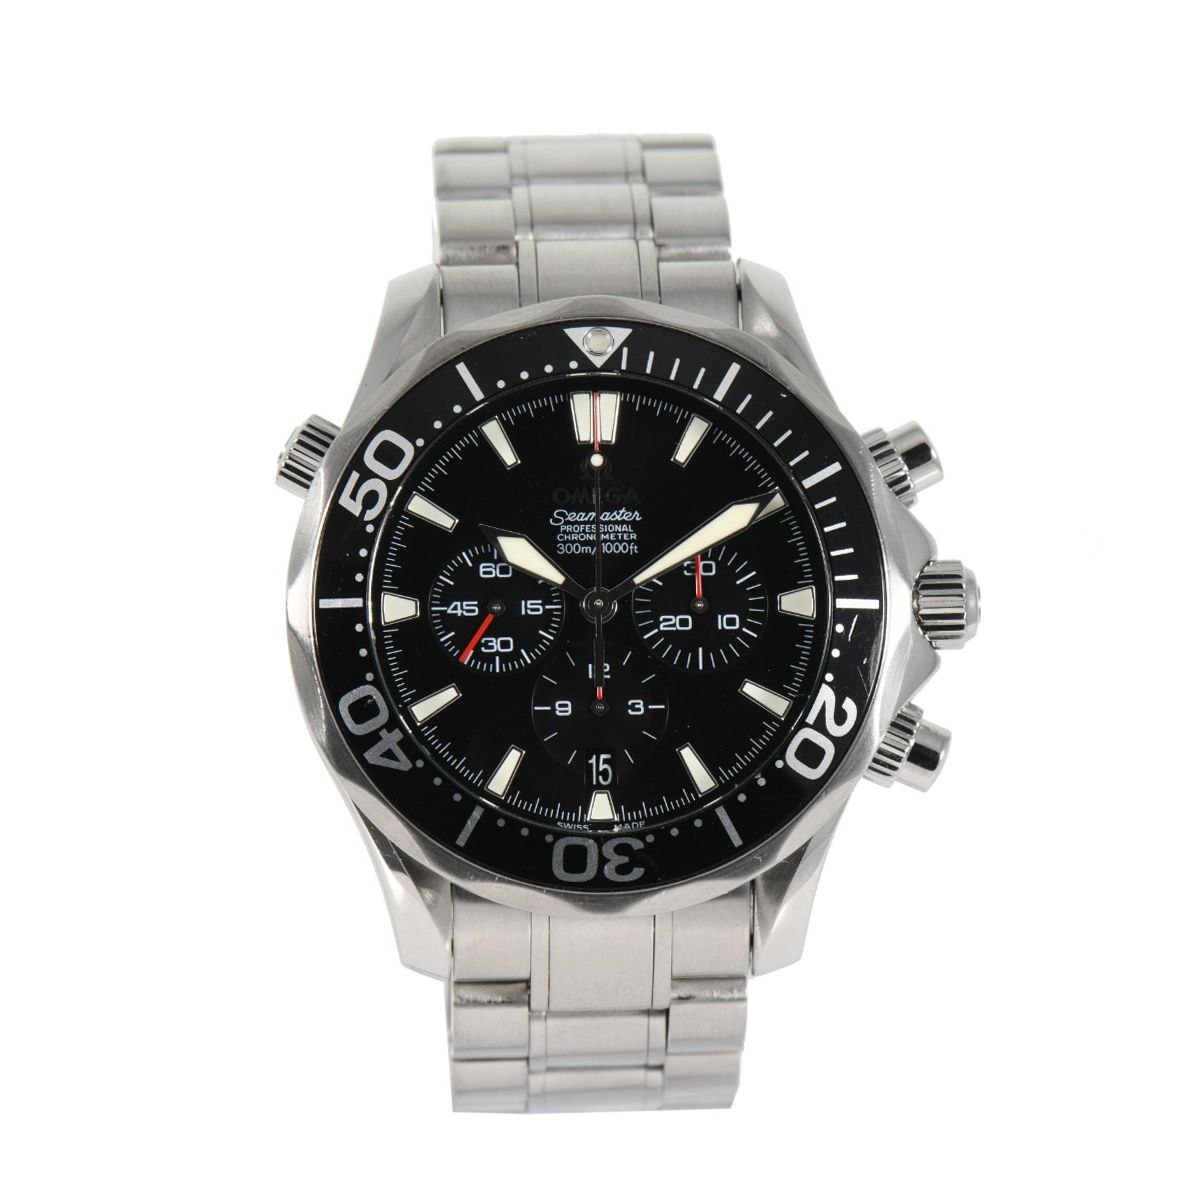 Omega Seamaster Chrono Diver 212.30.42.50.01.001 Black 41mm Mens watch